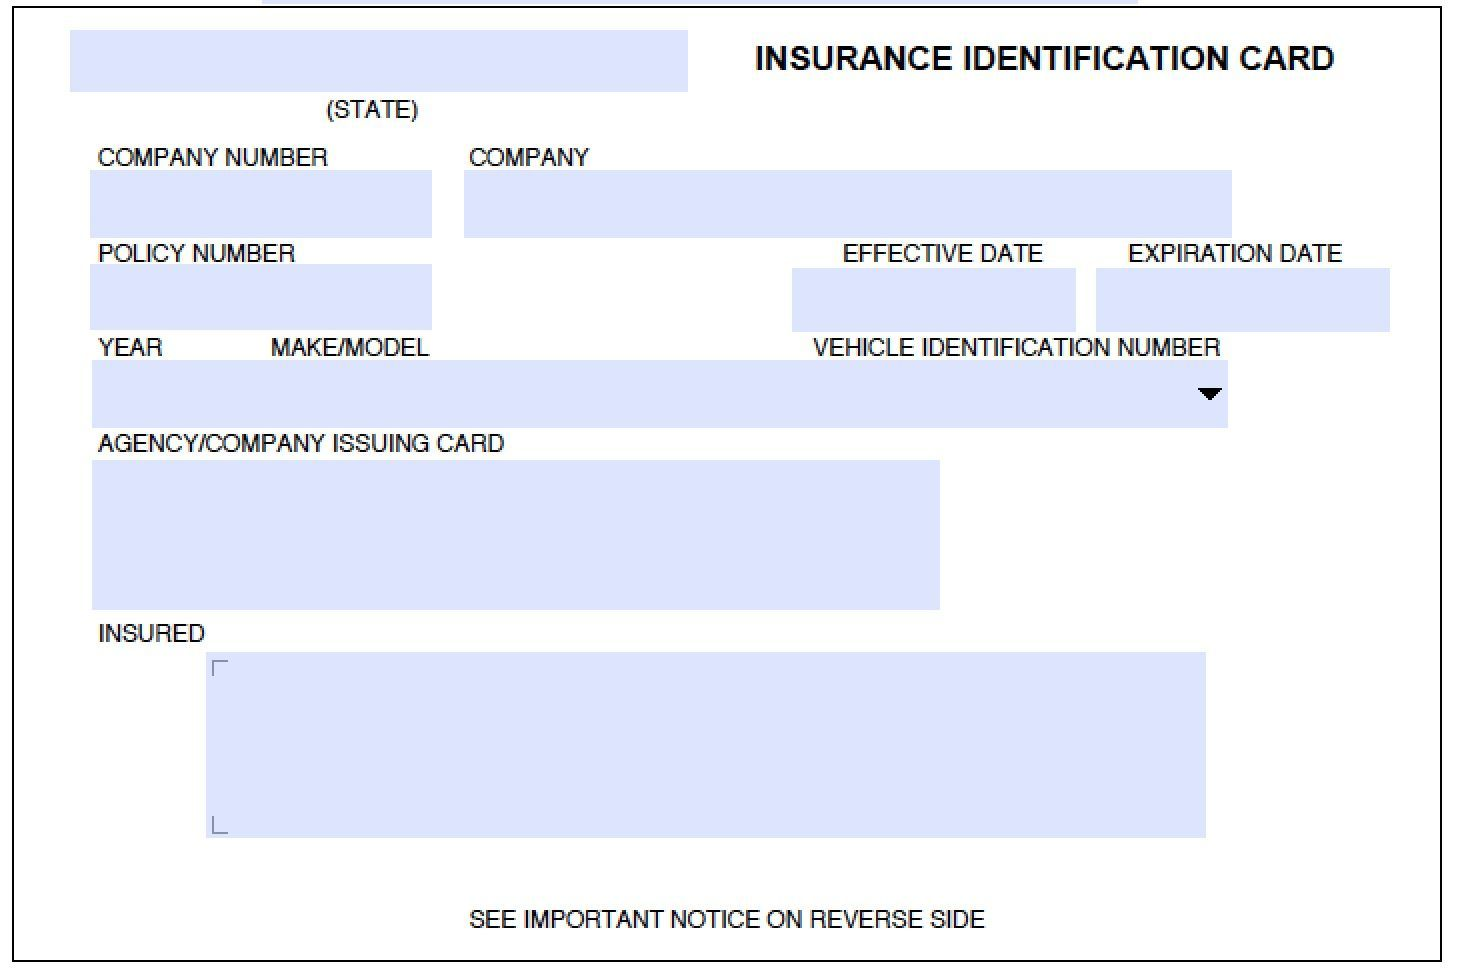 insurance card template free download  Pin by dinding 3d on remplates and resume | Pinterest | Card ...